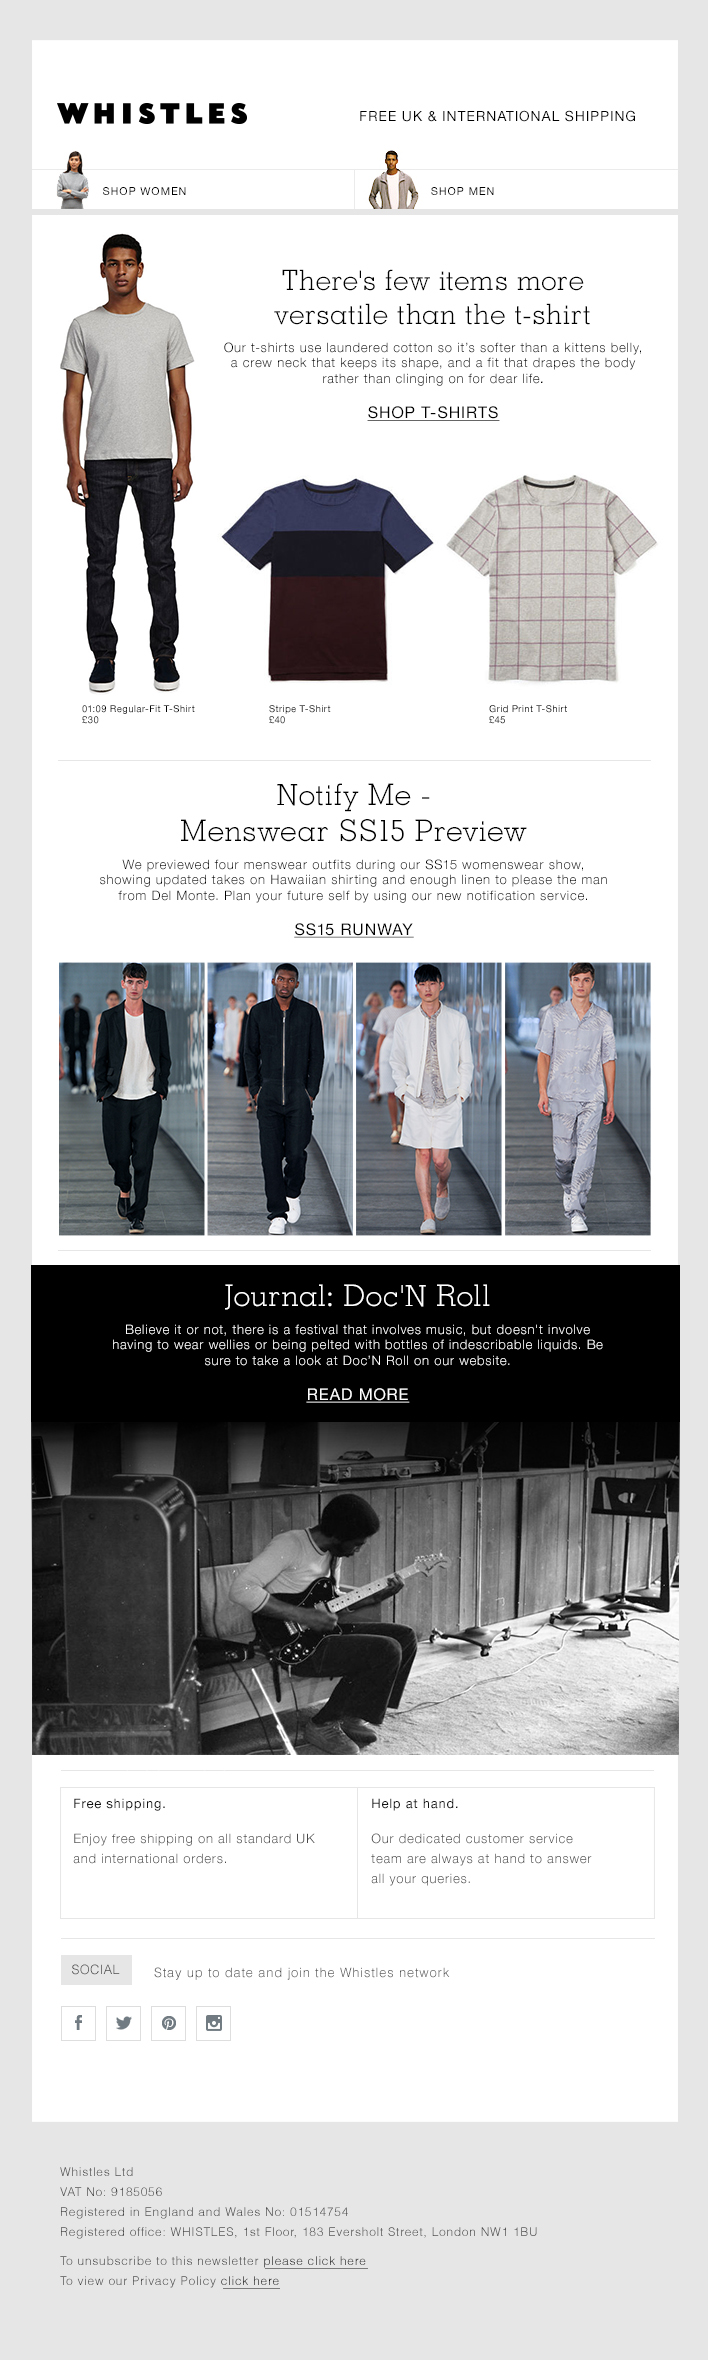 WH_NEWSLETTER_LFW_MEN_final.jpg